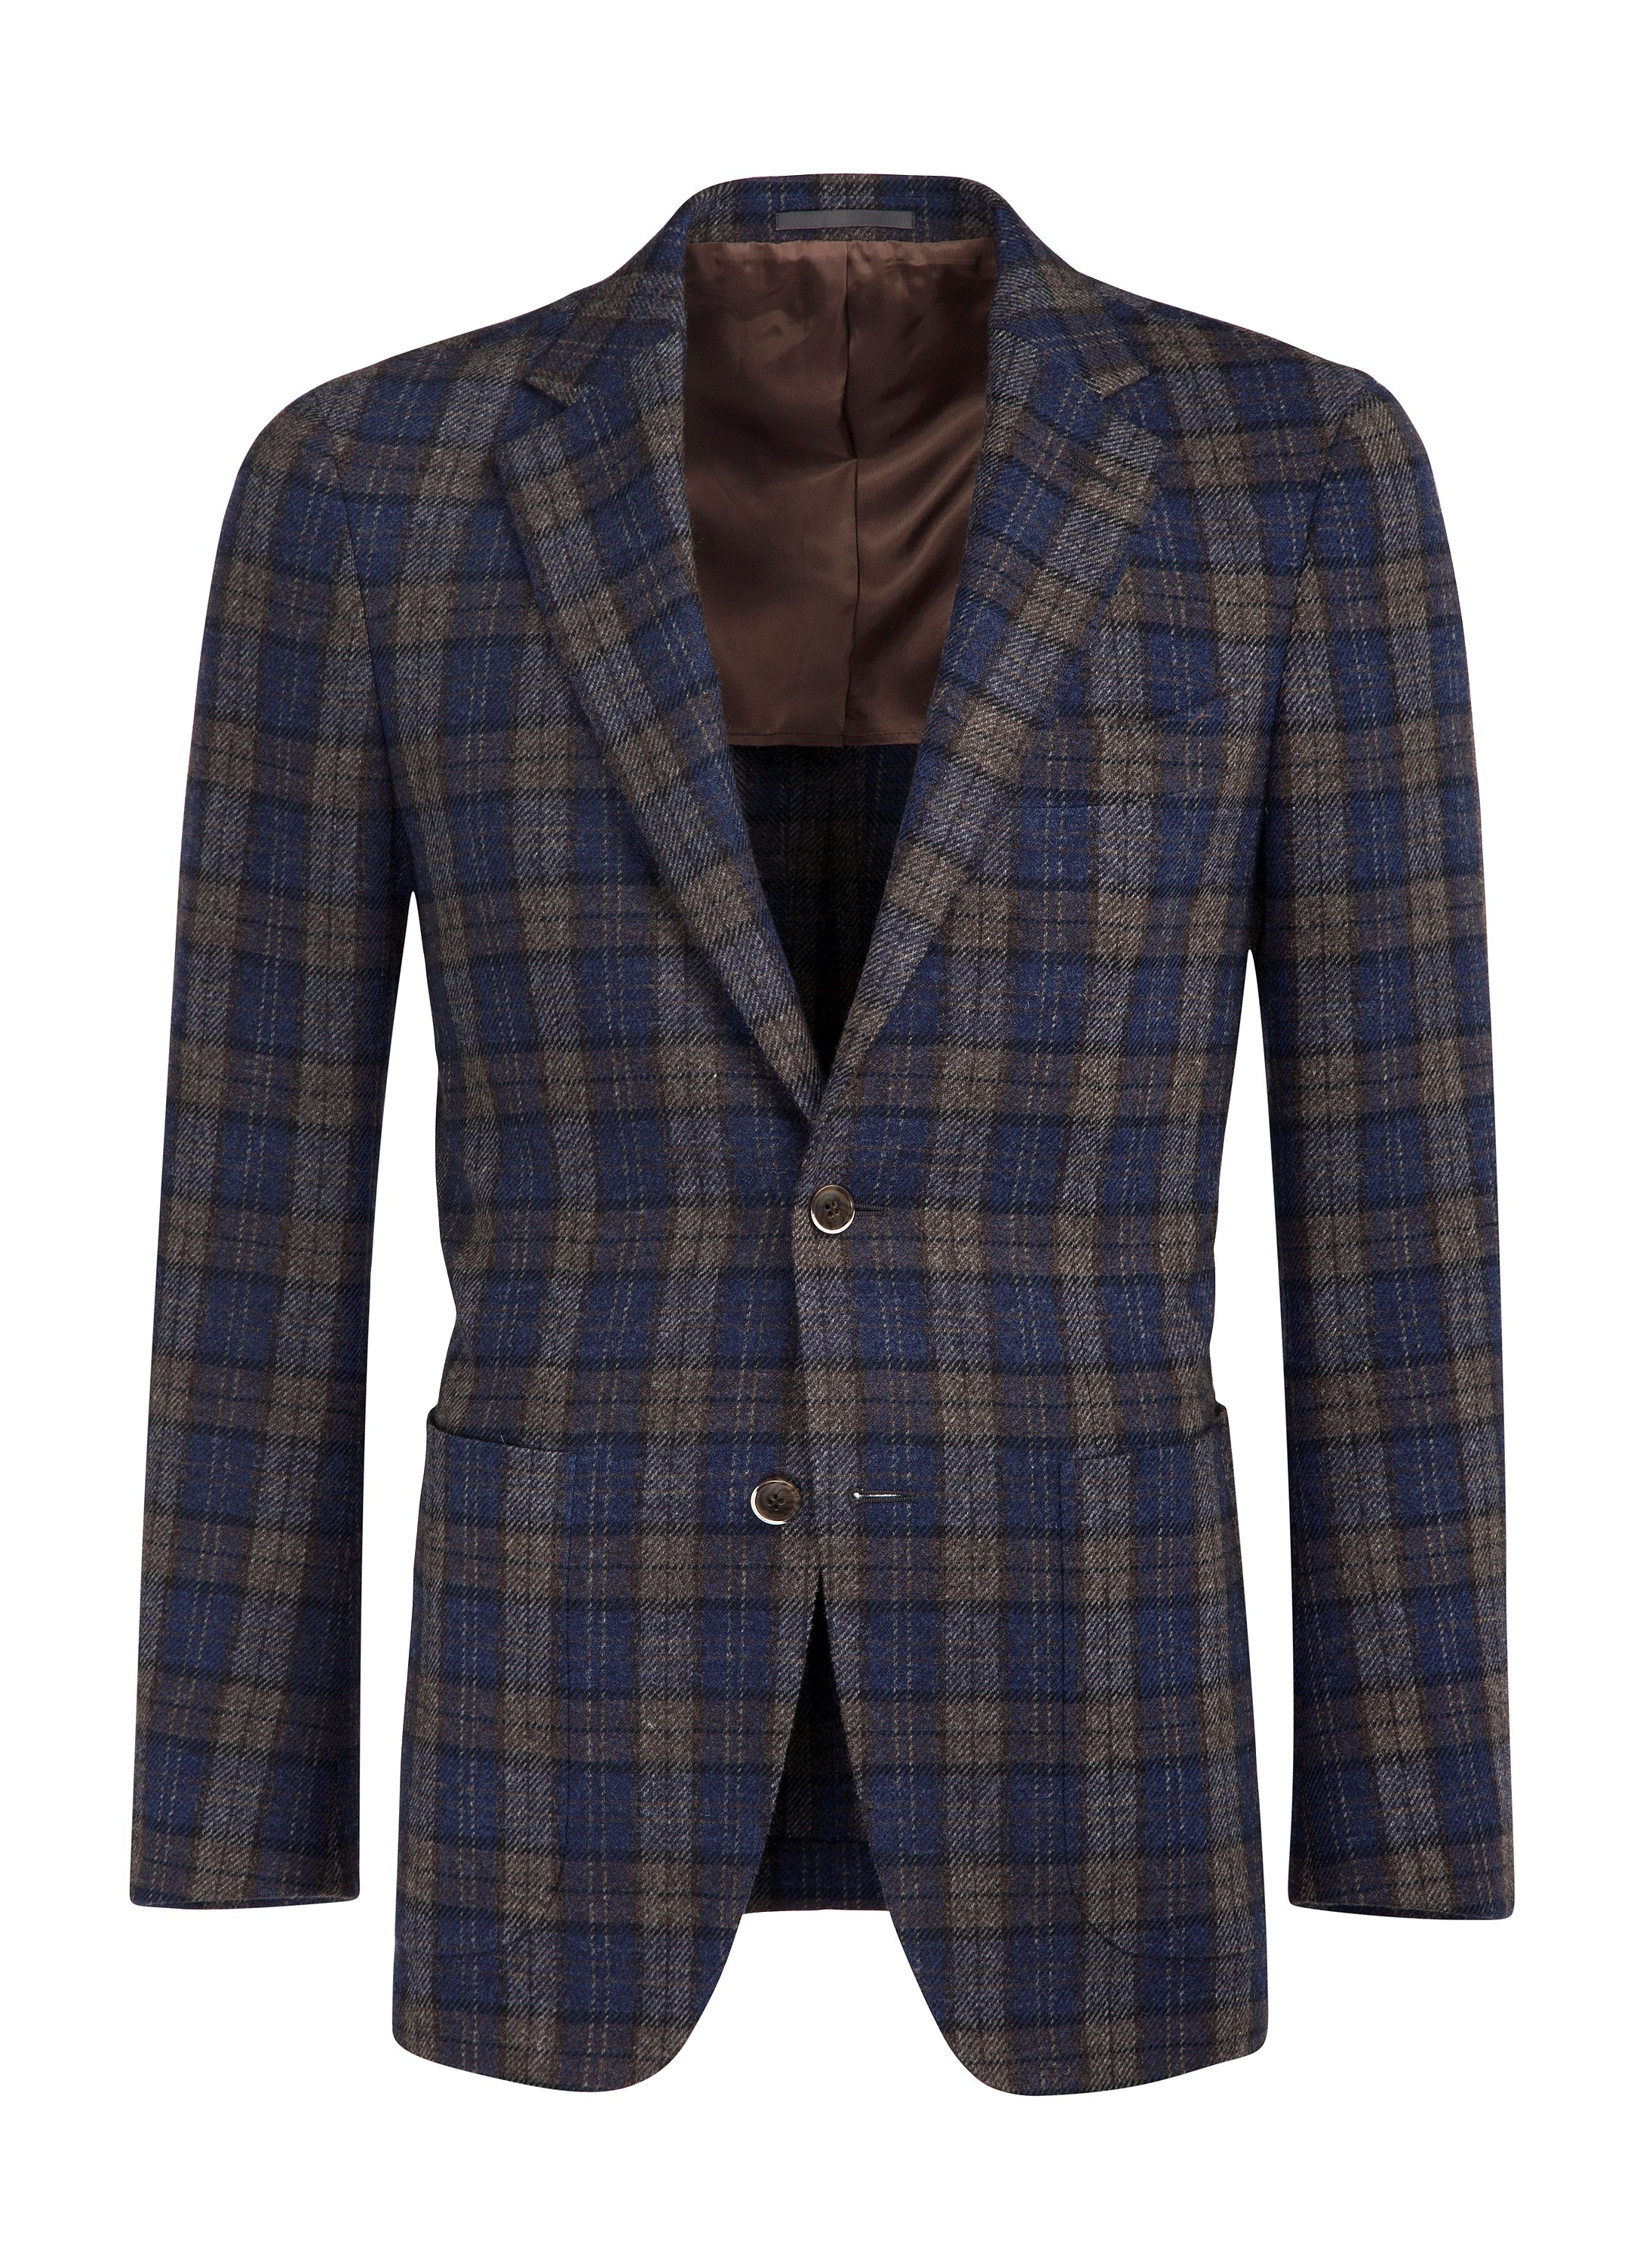 http://statics.suitsupply.com/images/products/Jackets/zoom/Jackets_Blue_Check_Havana_C790_Suitsupply_Online_Store_5.jpg